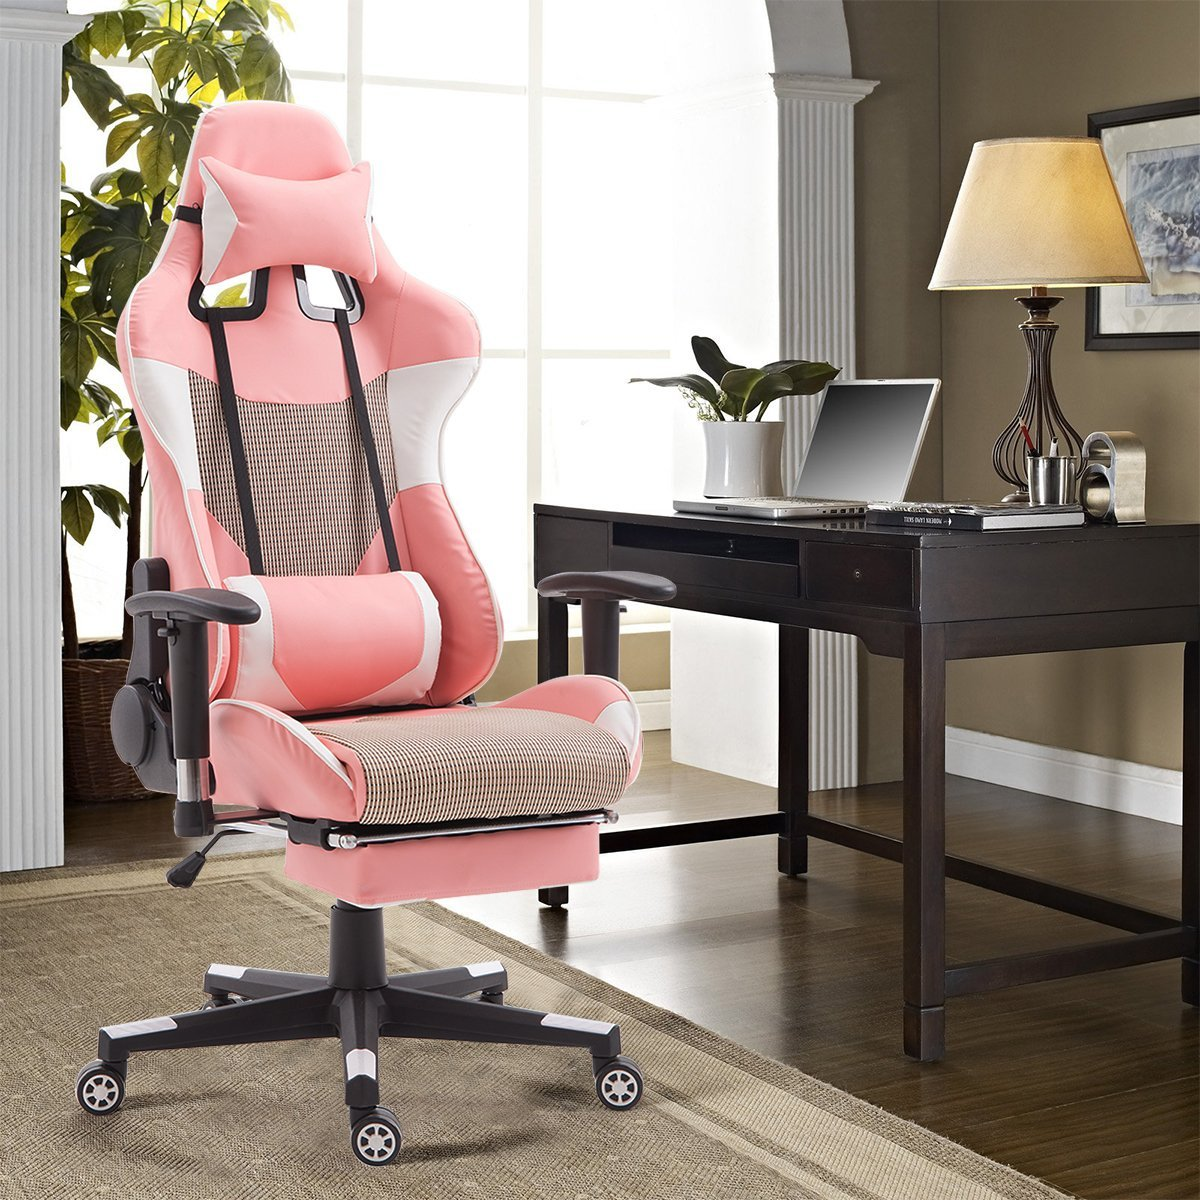 office chair ballet define posture giantex gaming high back racing style reclining with